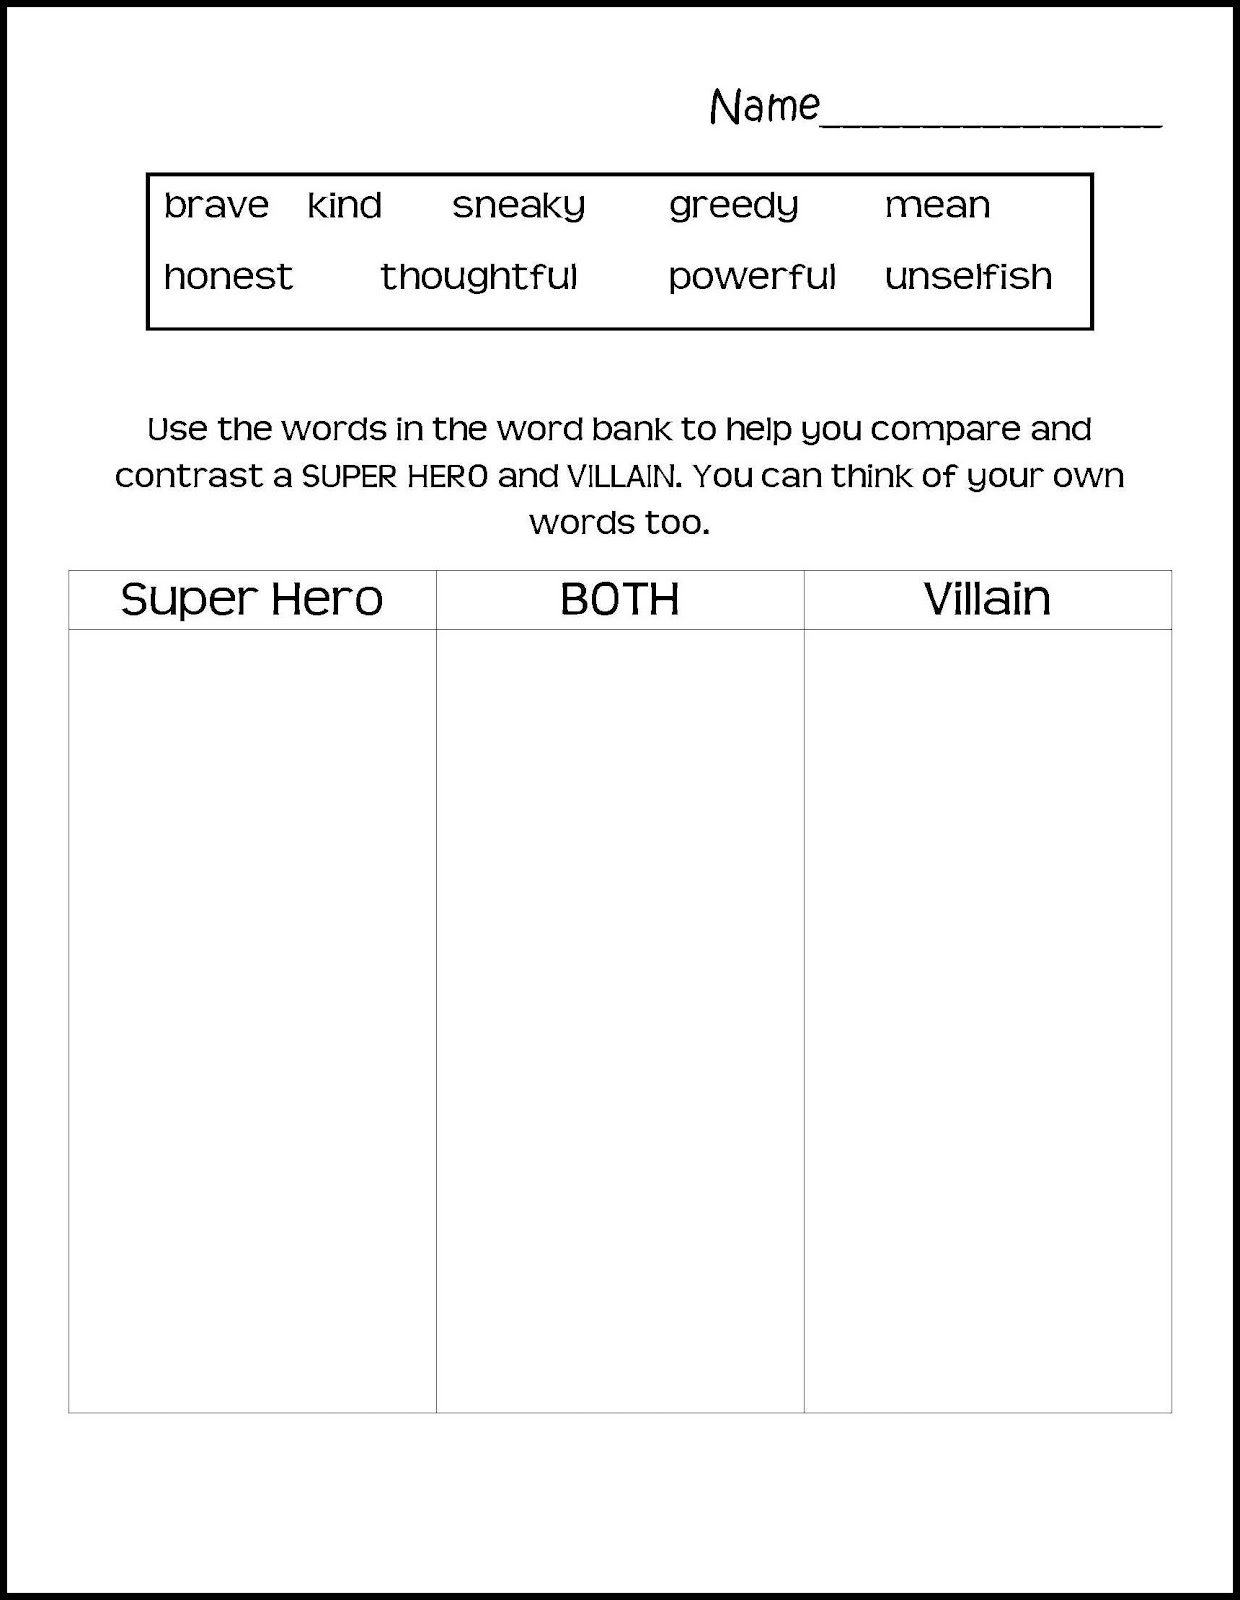 my super hero essay 95 my heroes essay examples from #1 writing company eliteessaywriters™ get more argumentative, persuasive my heroes essay samples and.